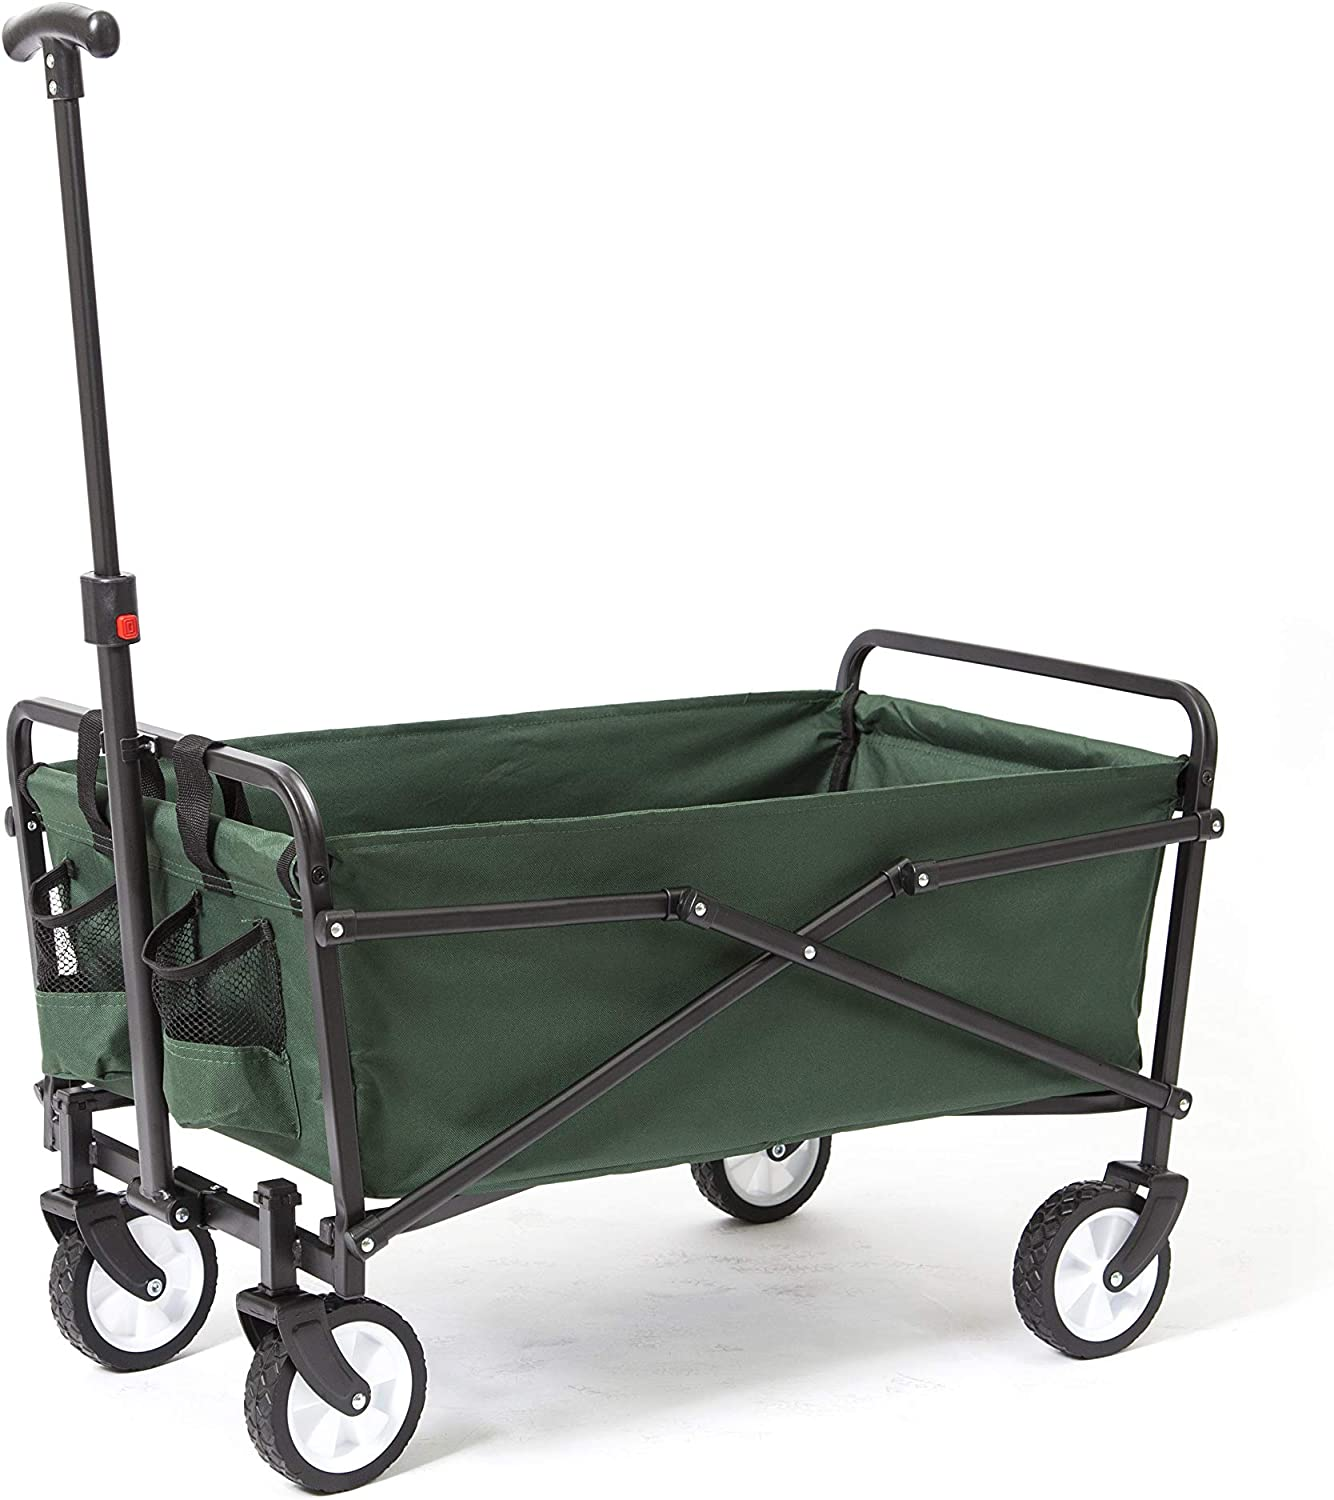 2 Pack Green Seina Collapsible Steel Frame Folding Utility Beach Wagon Cart